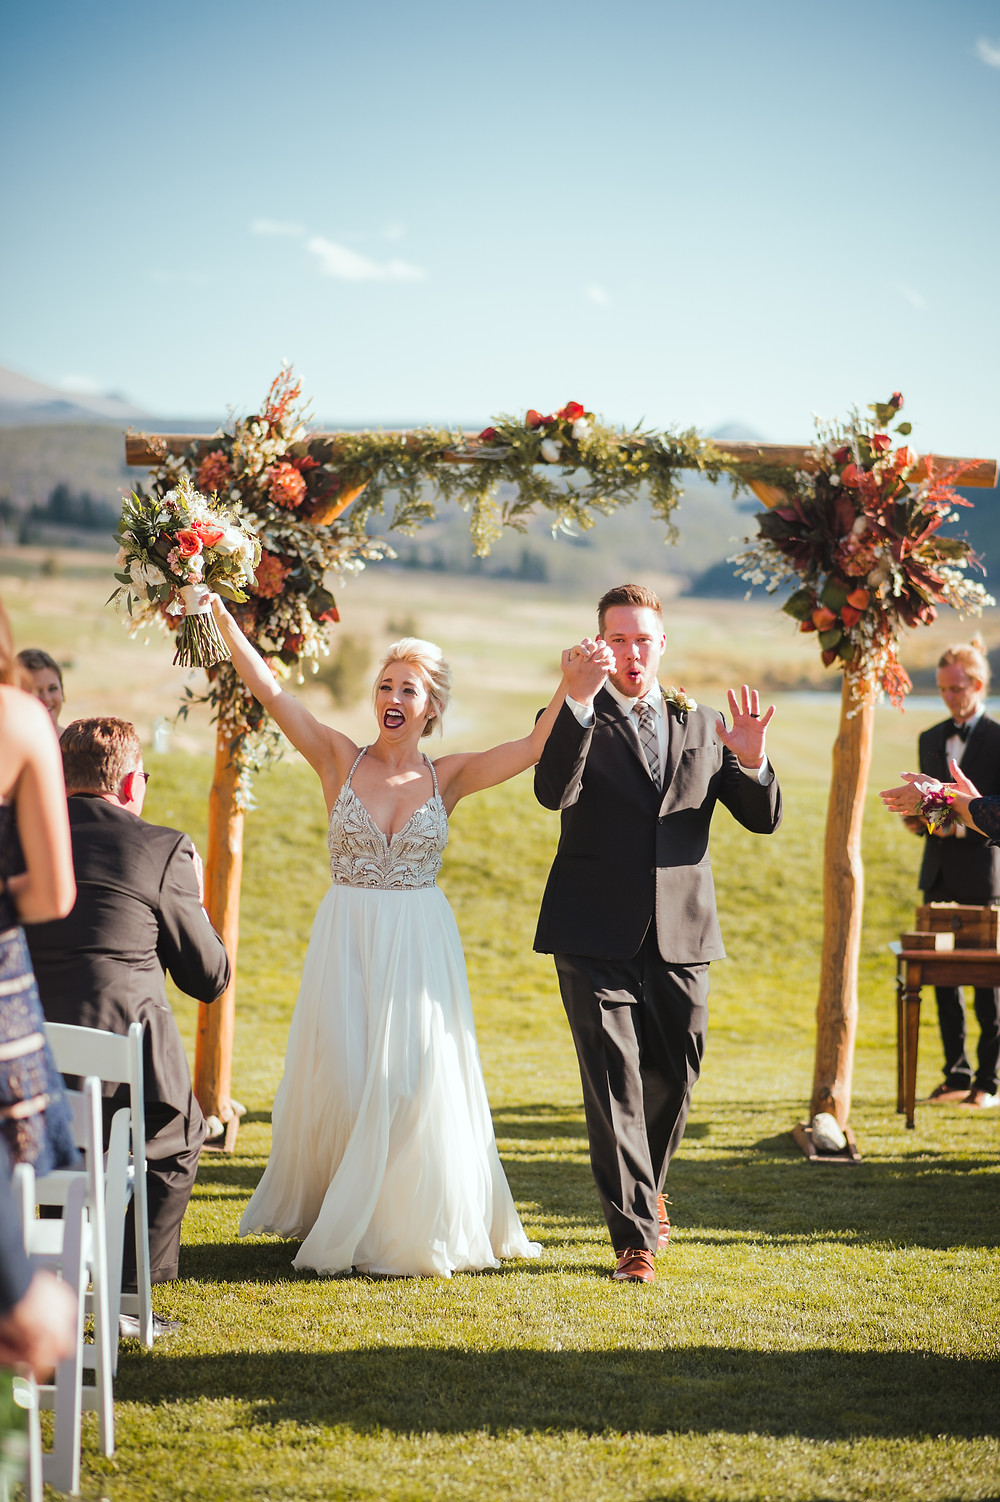 Keystone Wedding - Keystone Ranch Wedding - Colorado Wedding